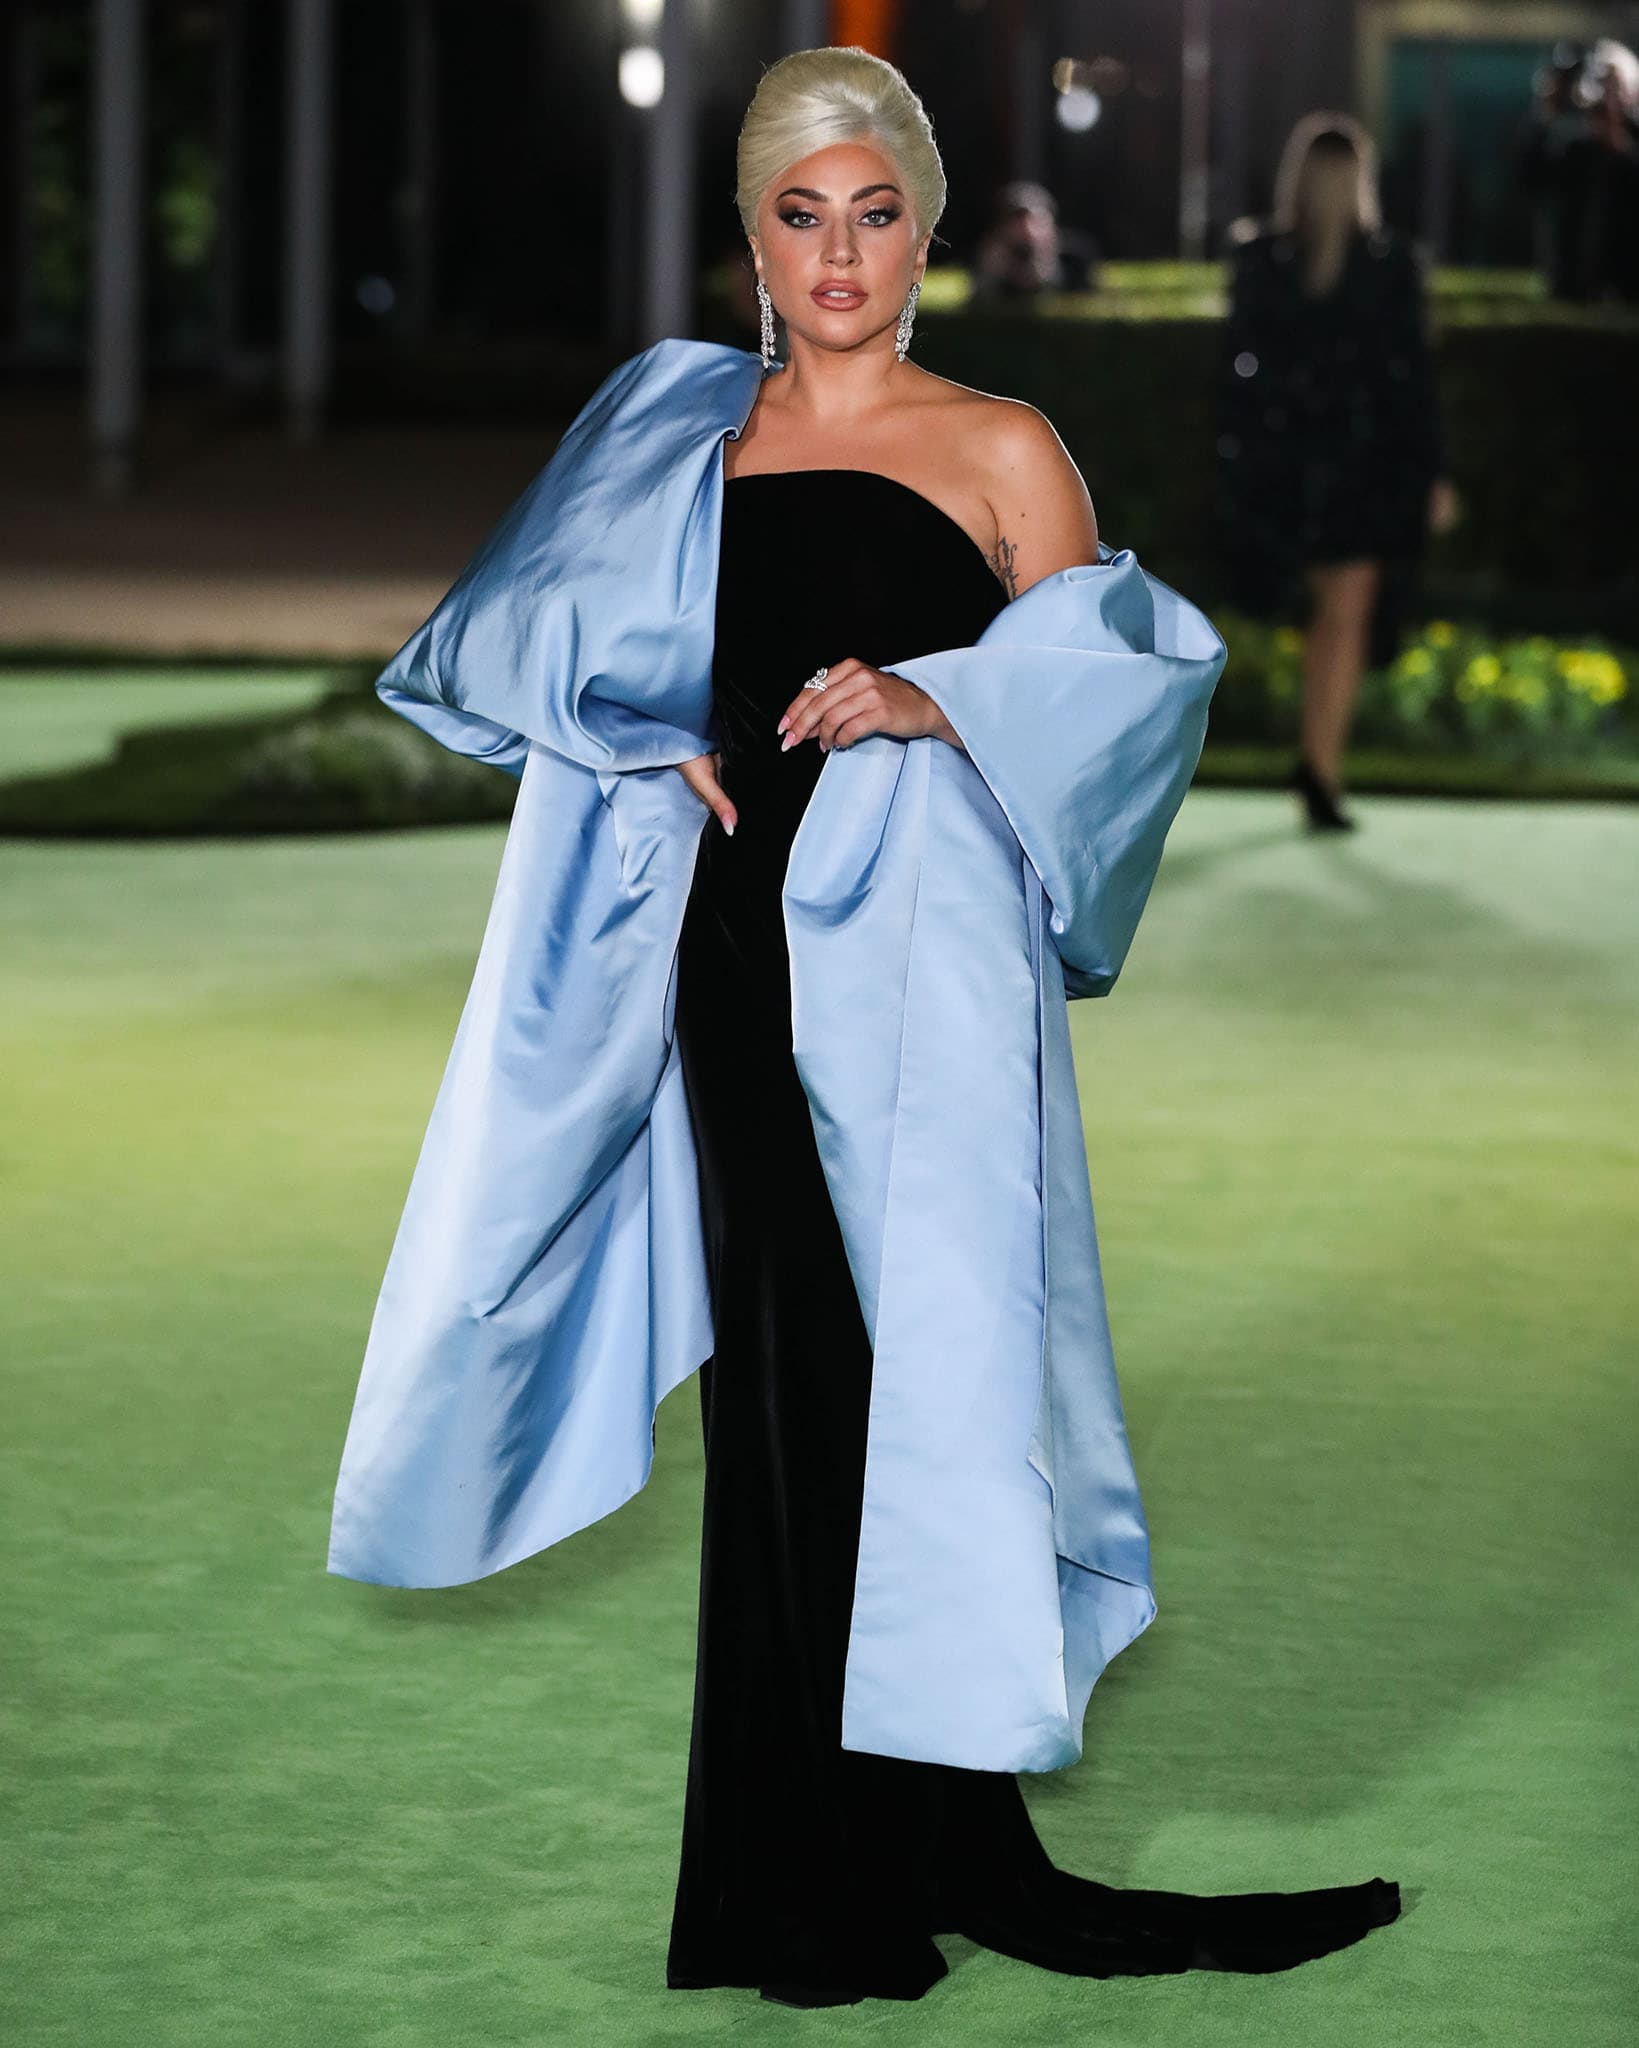 Lady Gaga attends the Academy Museum of Motion Pictures Opening Gala in Los Angeles on September 25, 2021